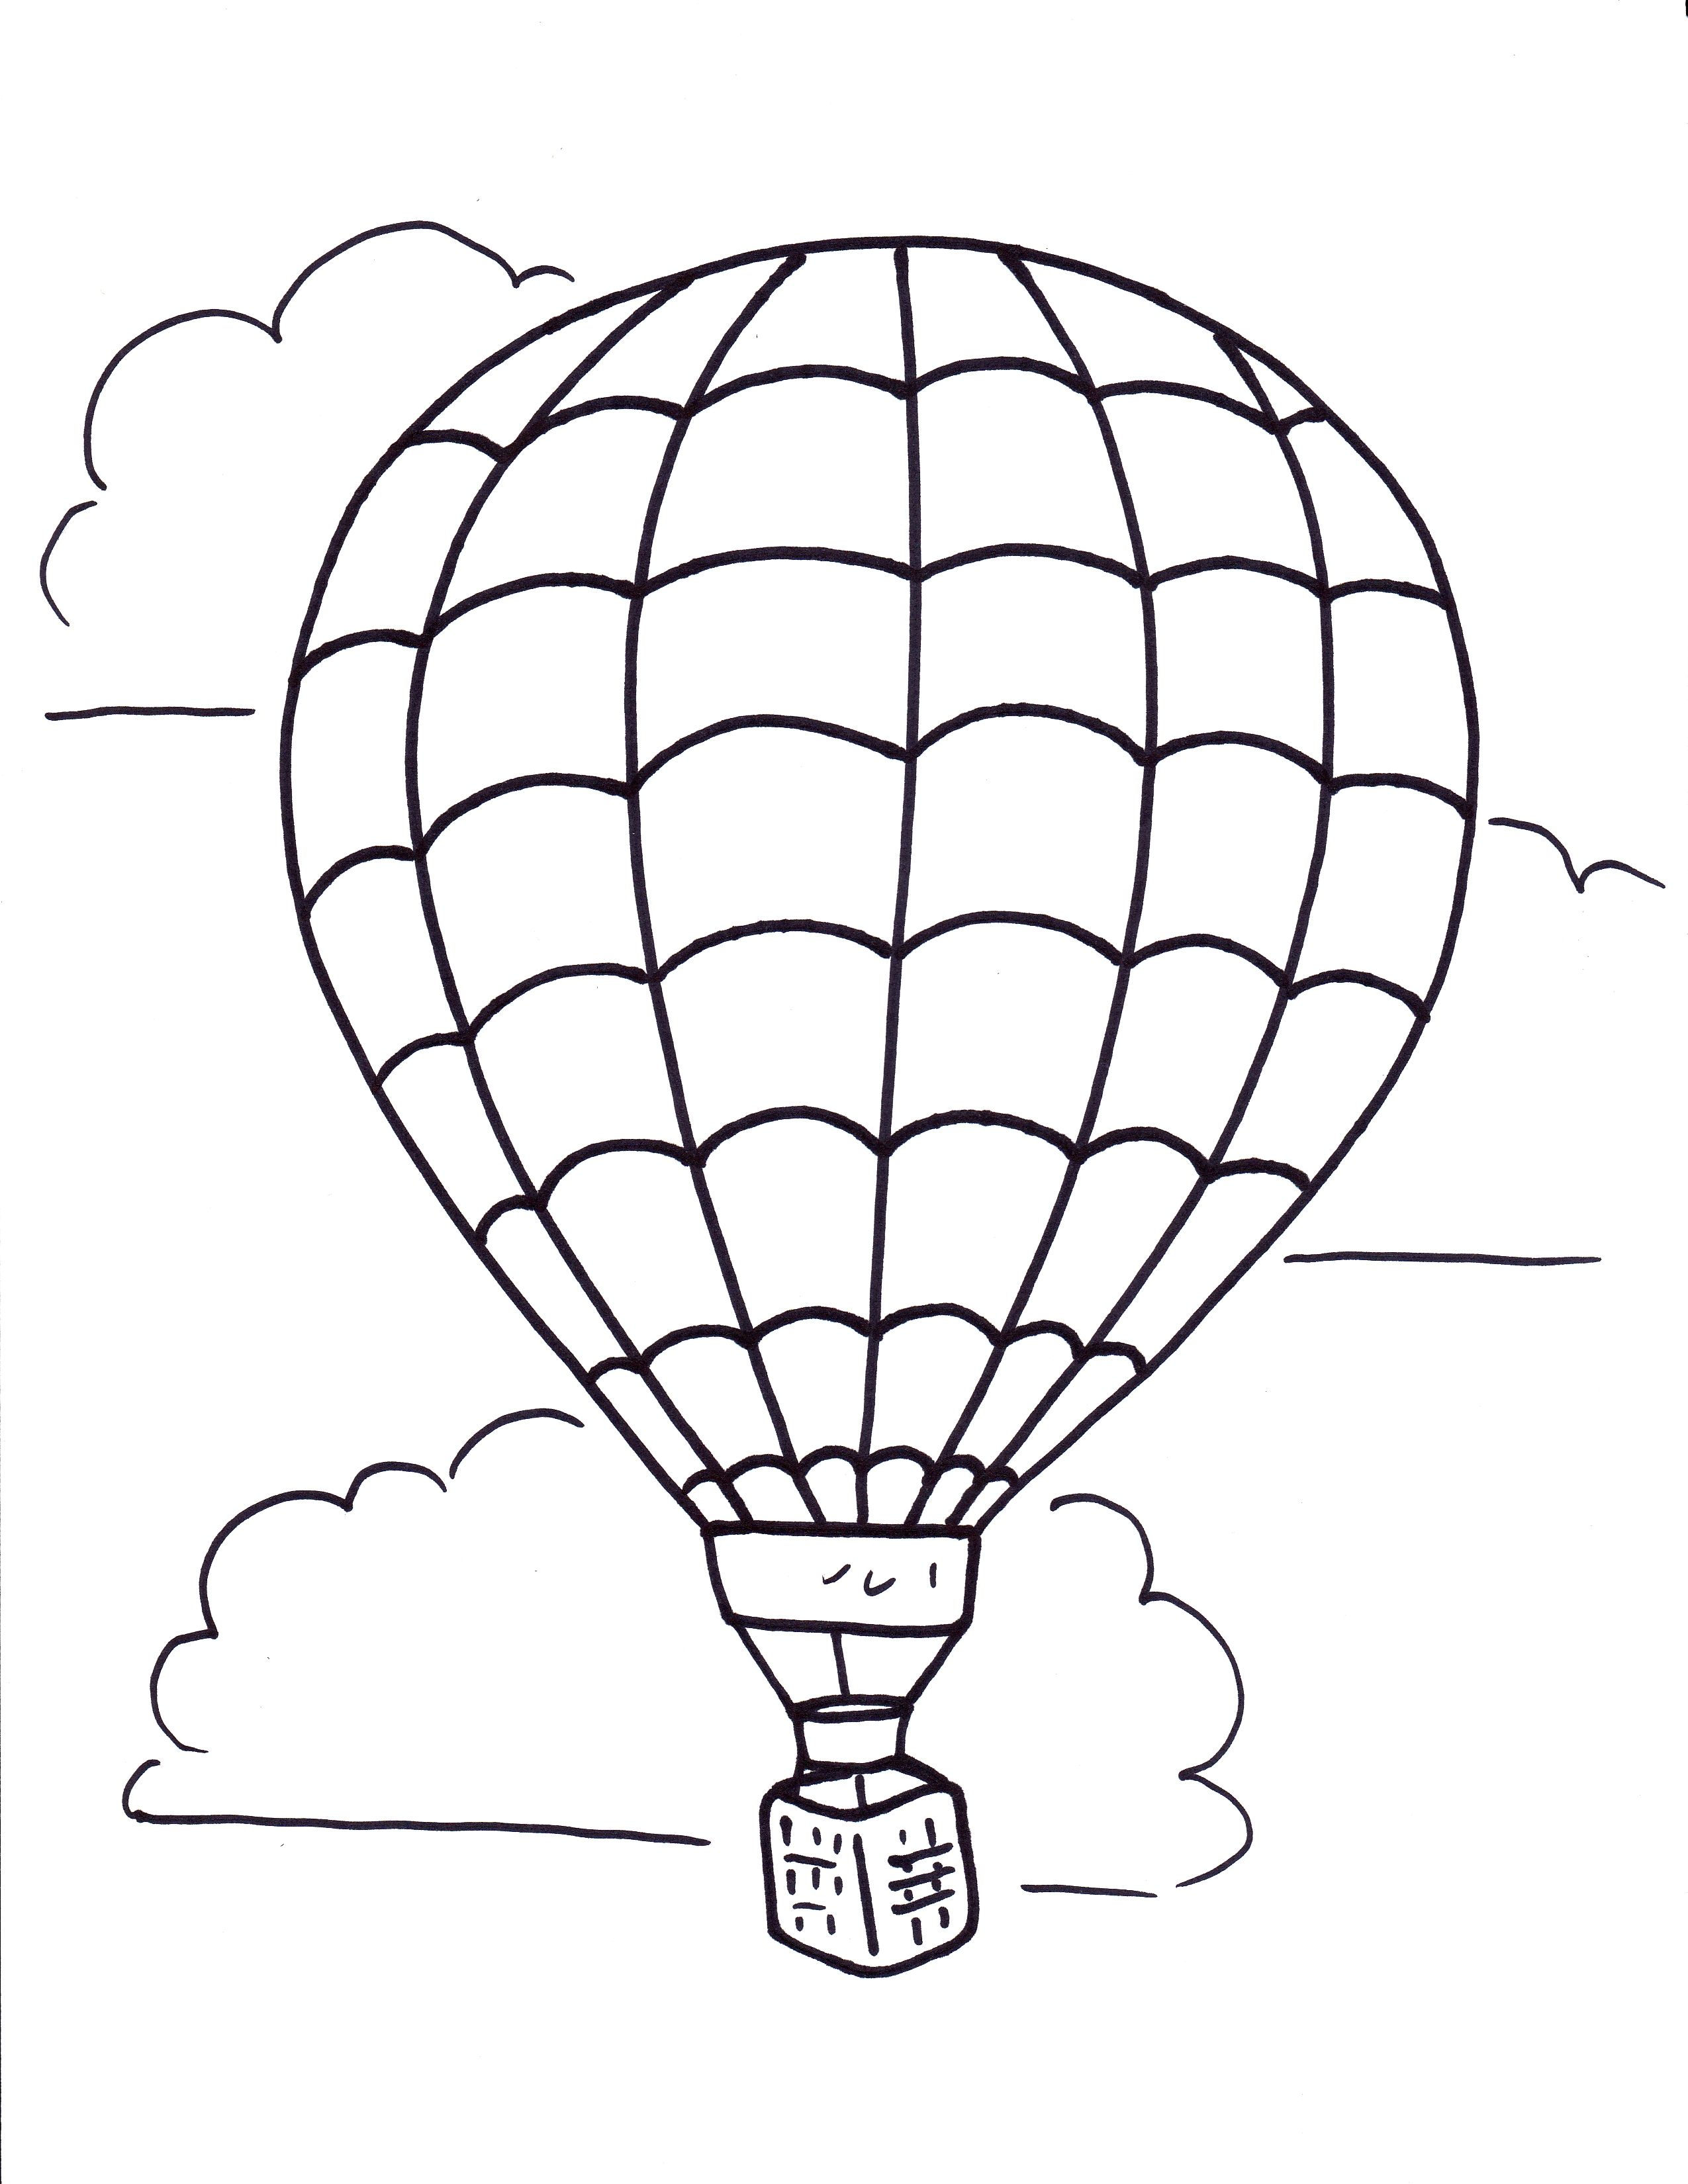 Related Hot Air Balloon Coloring Pages Item 11522 Hot Air Balloon Coloring Pages Hot Air Balloon Coloring Air Balloon Hot Air Balloon Drawing Hot Air Balloon